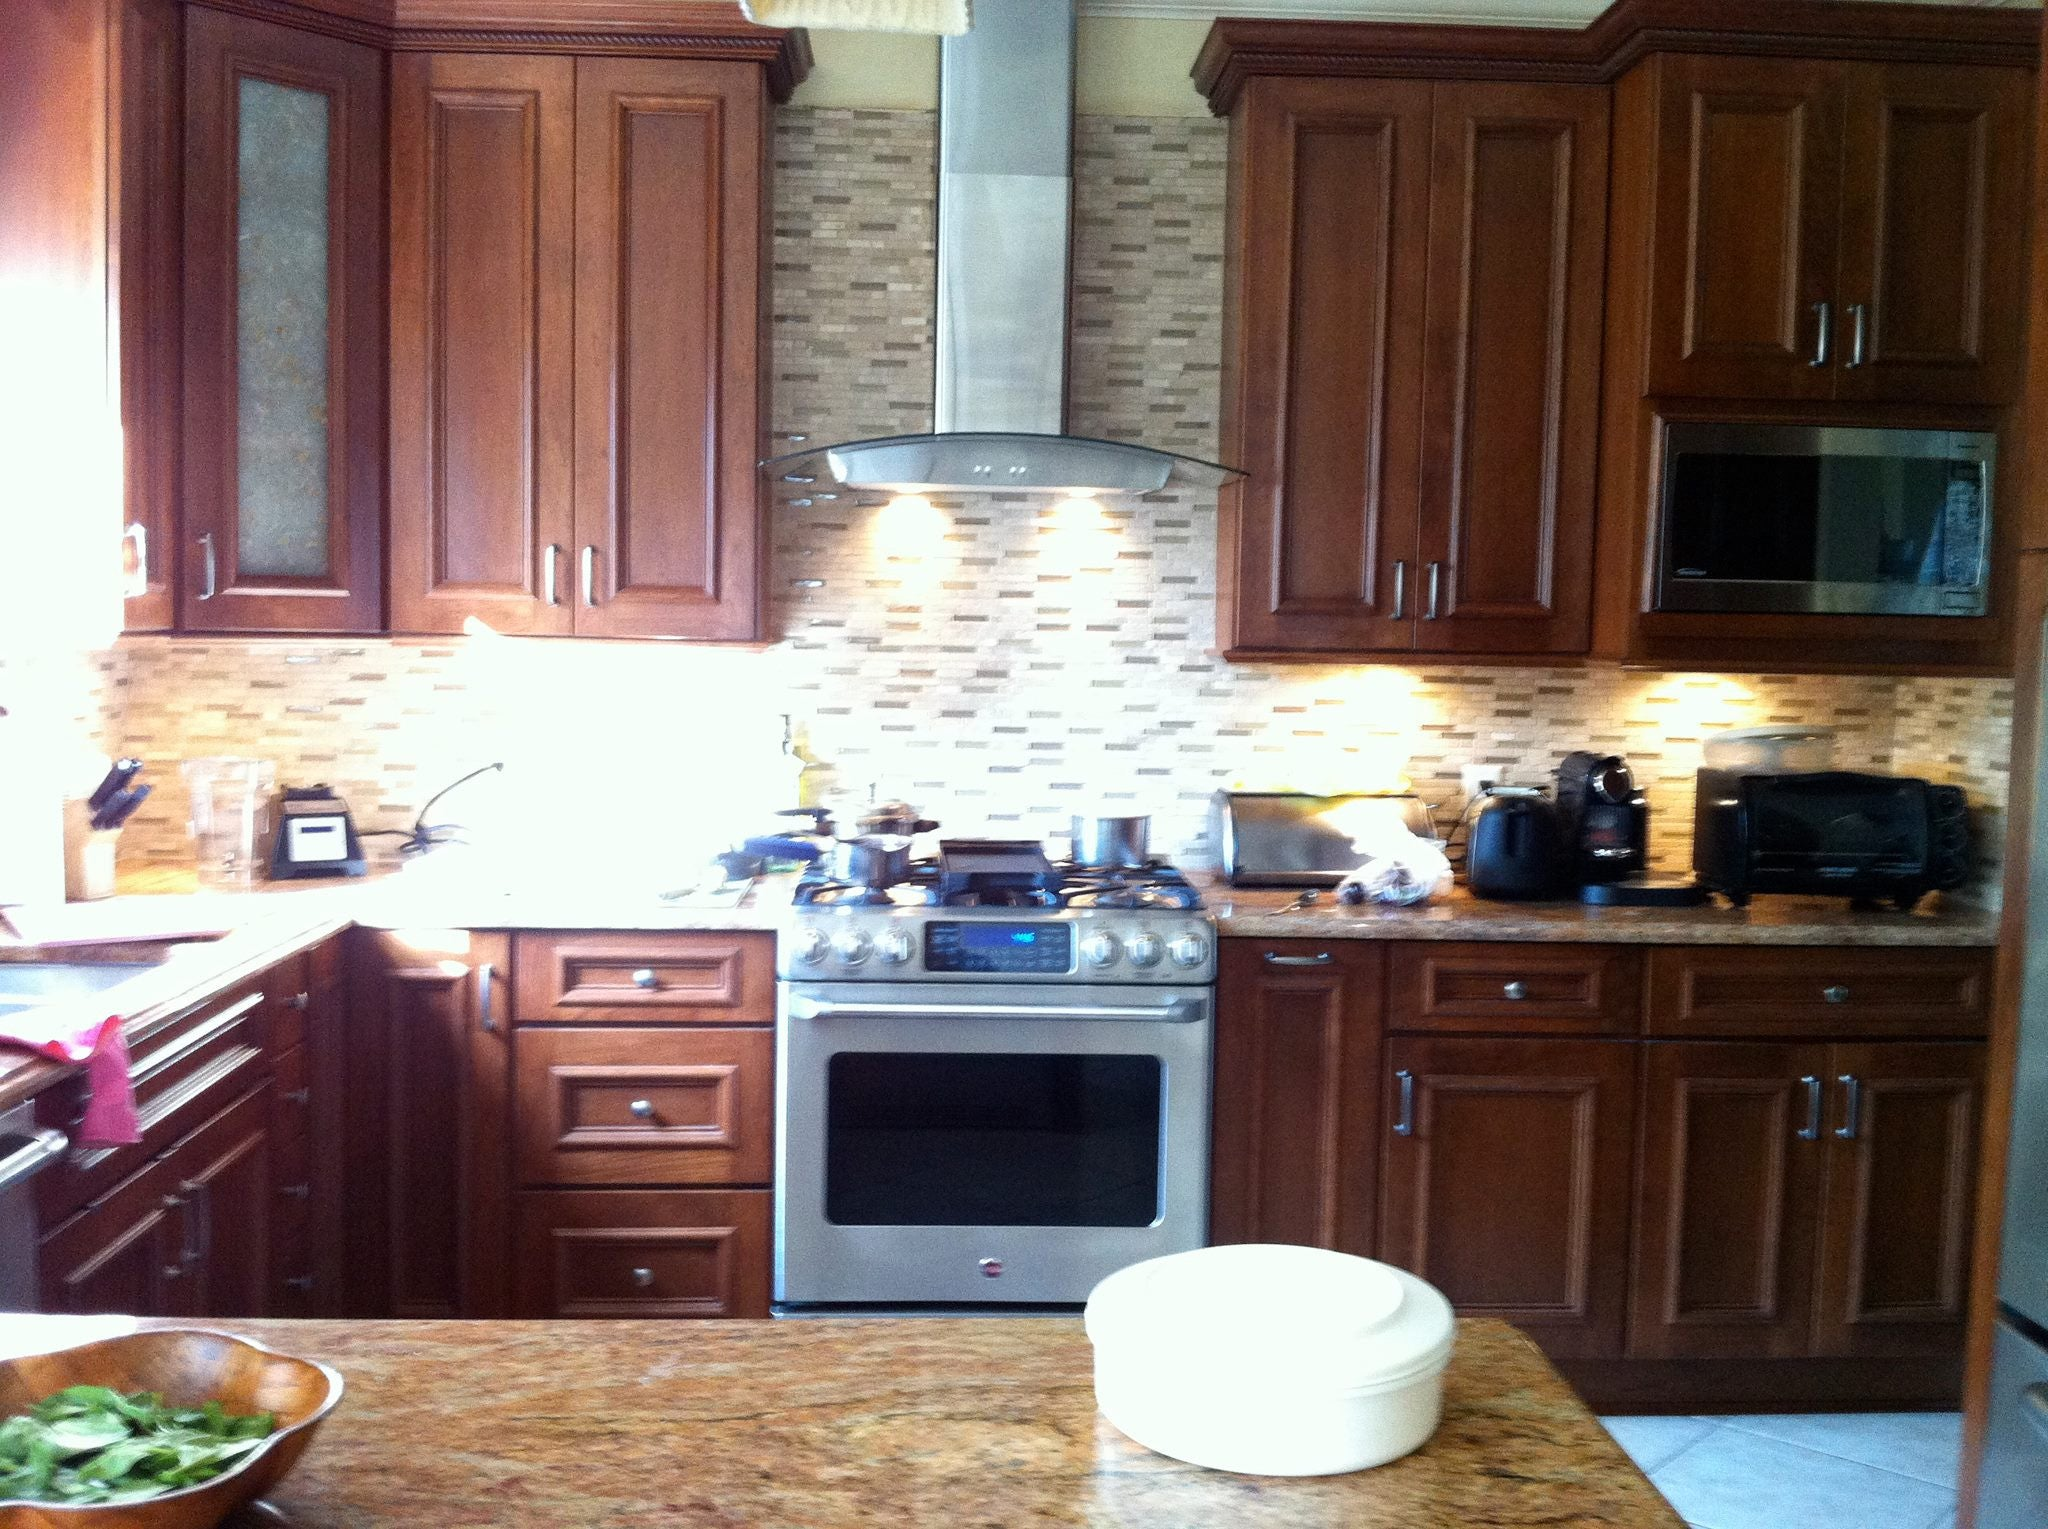 ESSEX HOLIDAY KITCHENS PATEL RESIDENCE NJ - Flex Cabinets